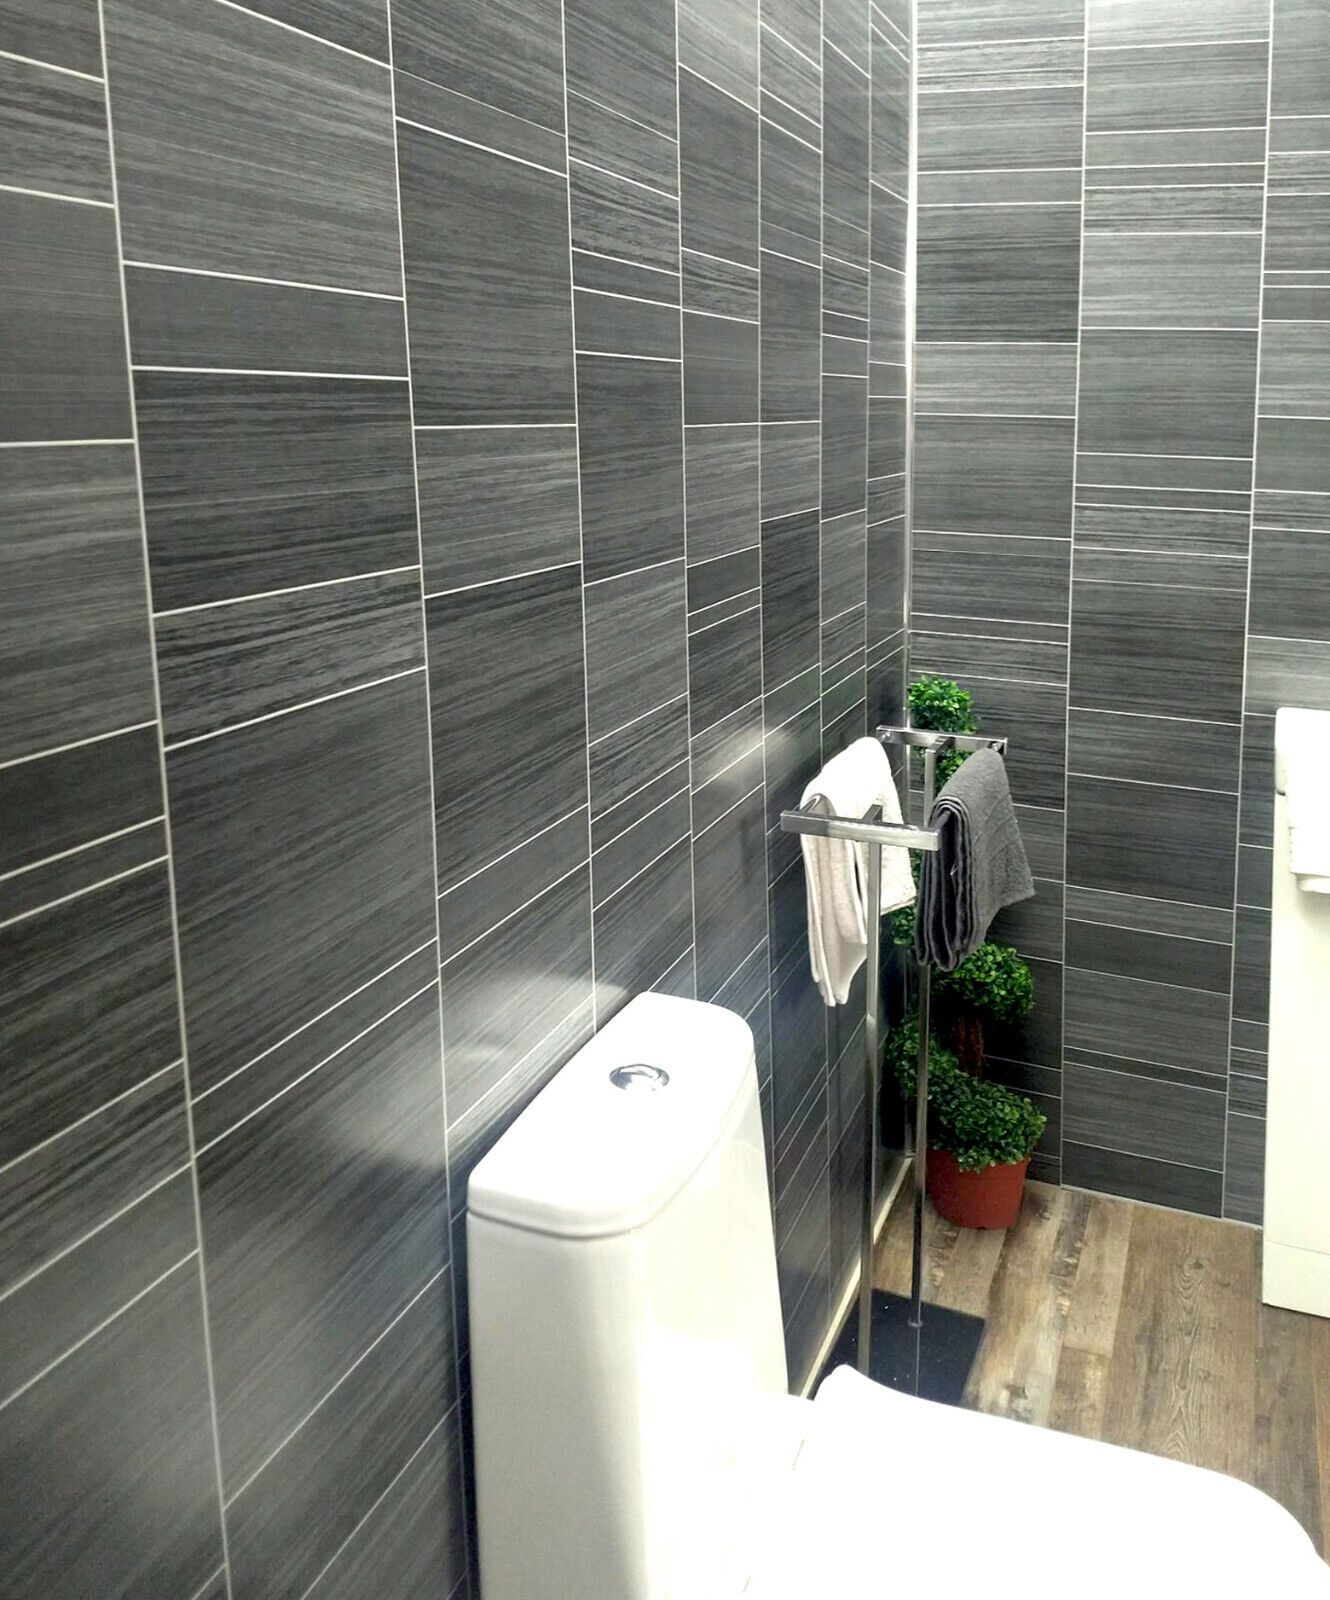 Executive Grey Tile Effect Bathroom Cladding Panels Wet Wall Shower Pvc Cladding Ebay